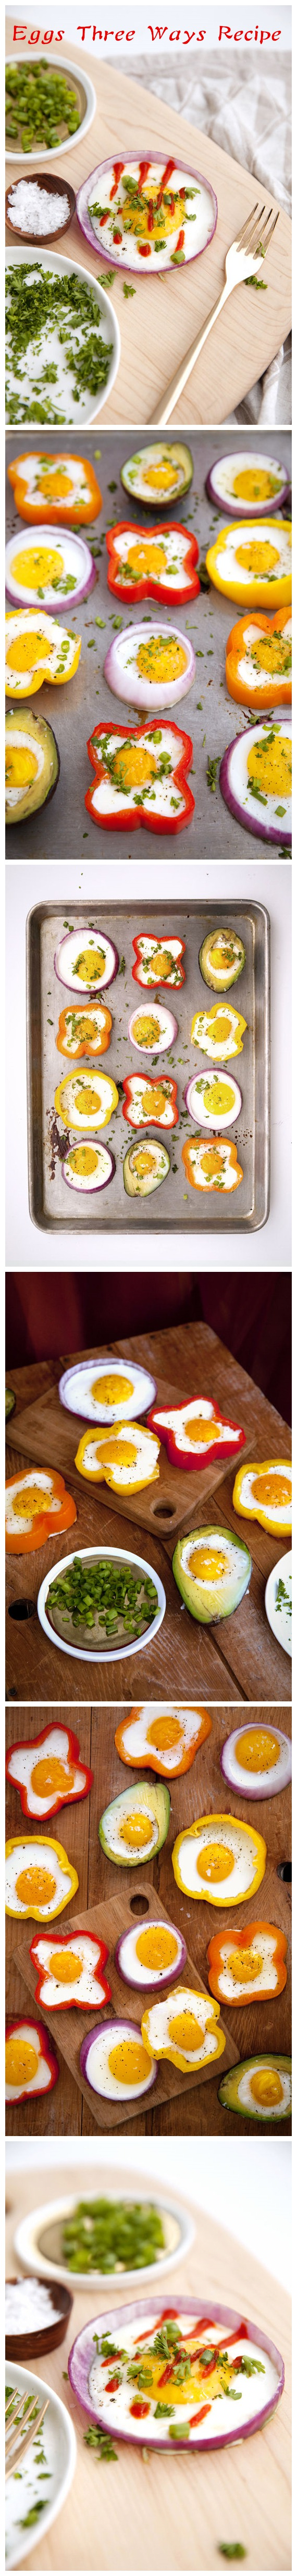 Eggs Three Ways Recipe